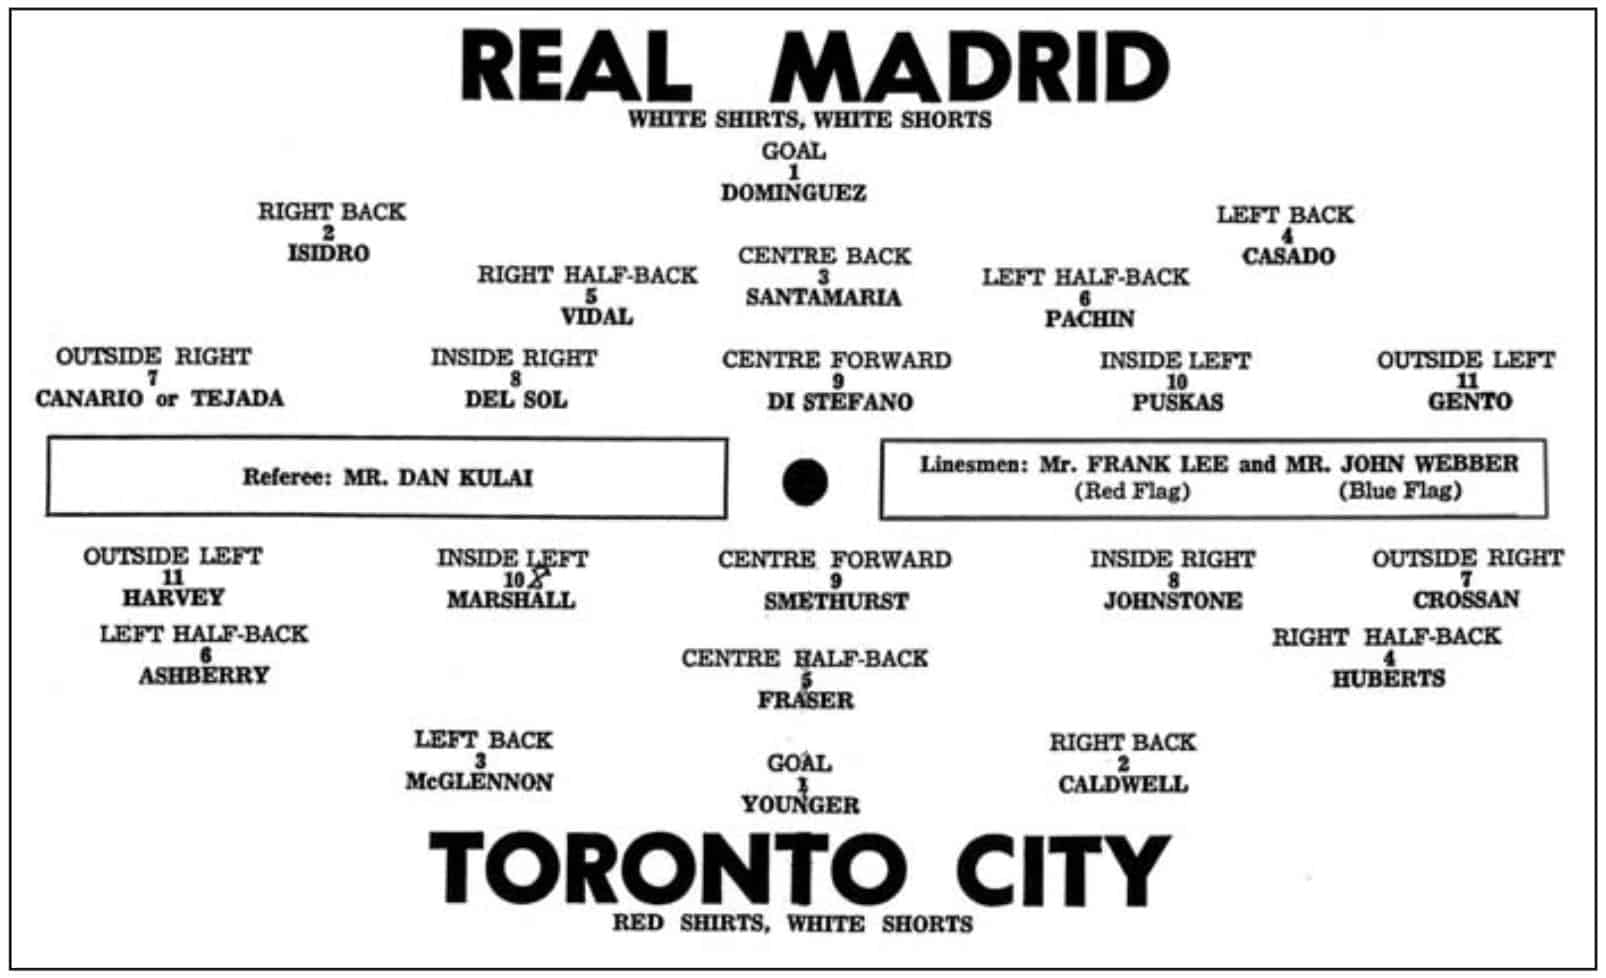 starting lines up of real madrid vs toronto city